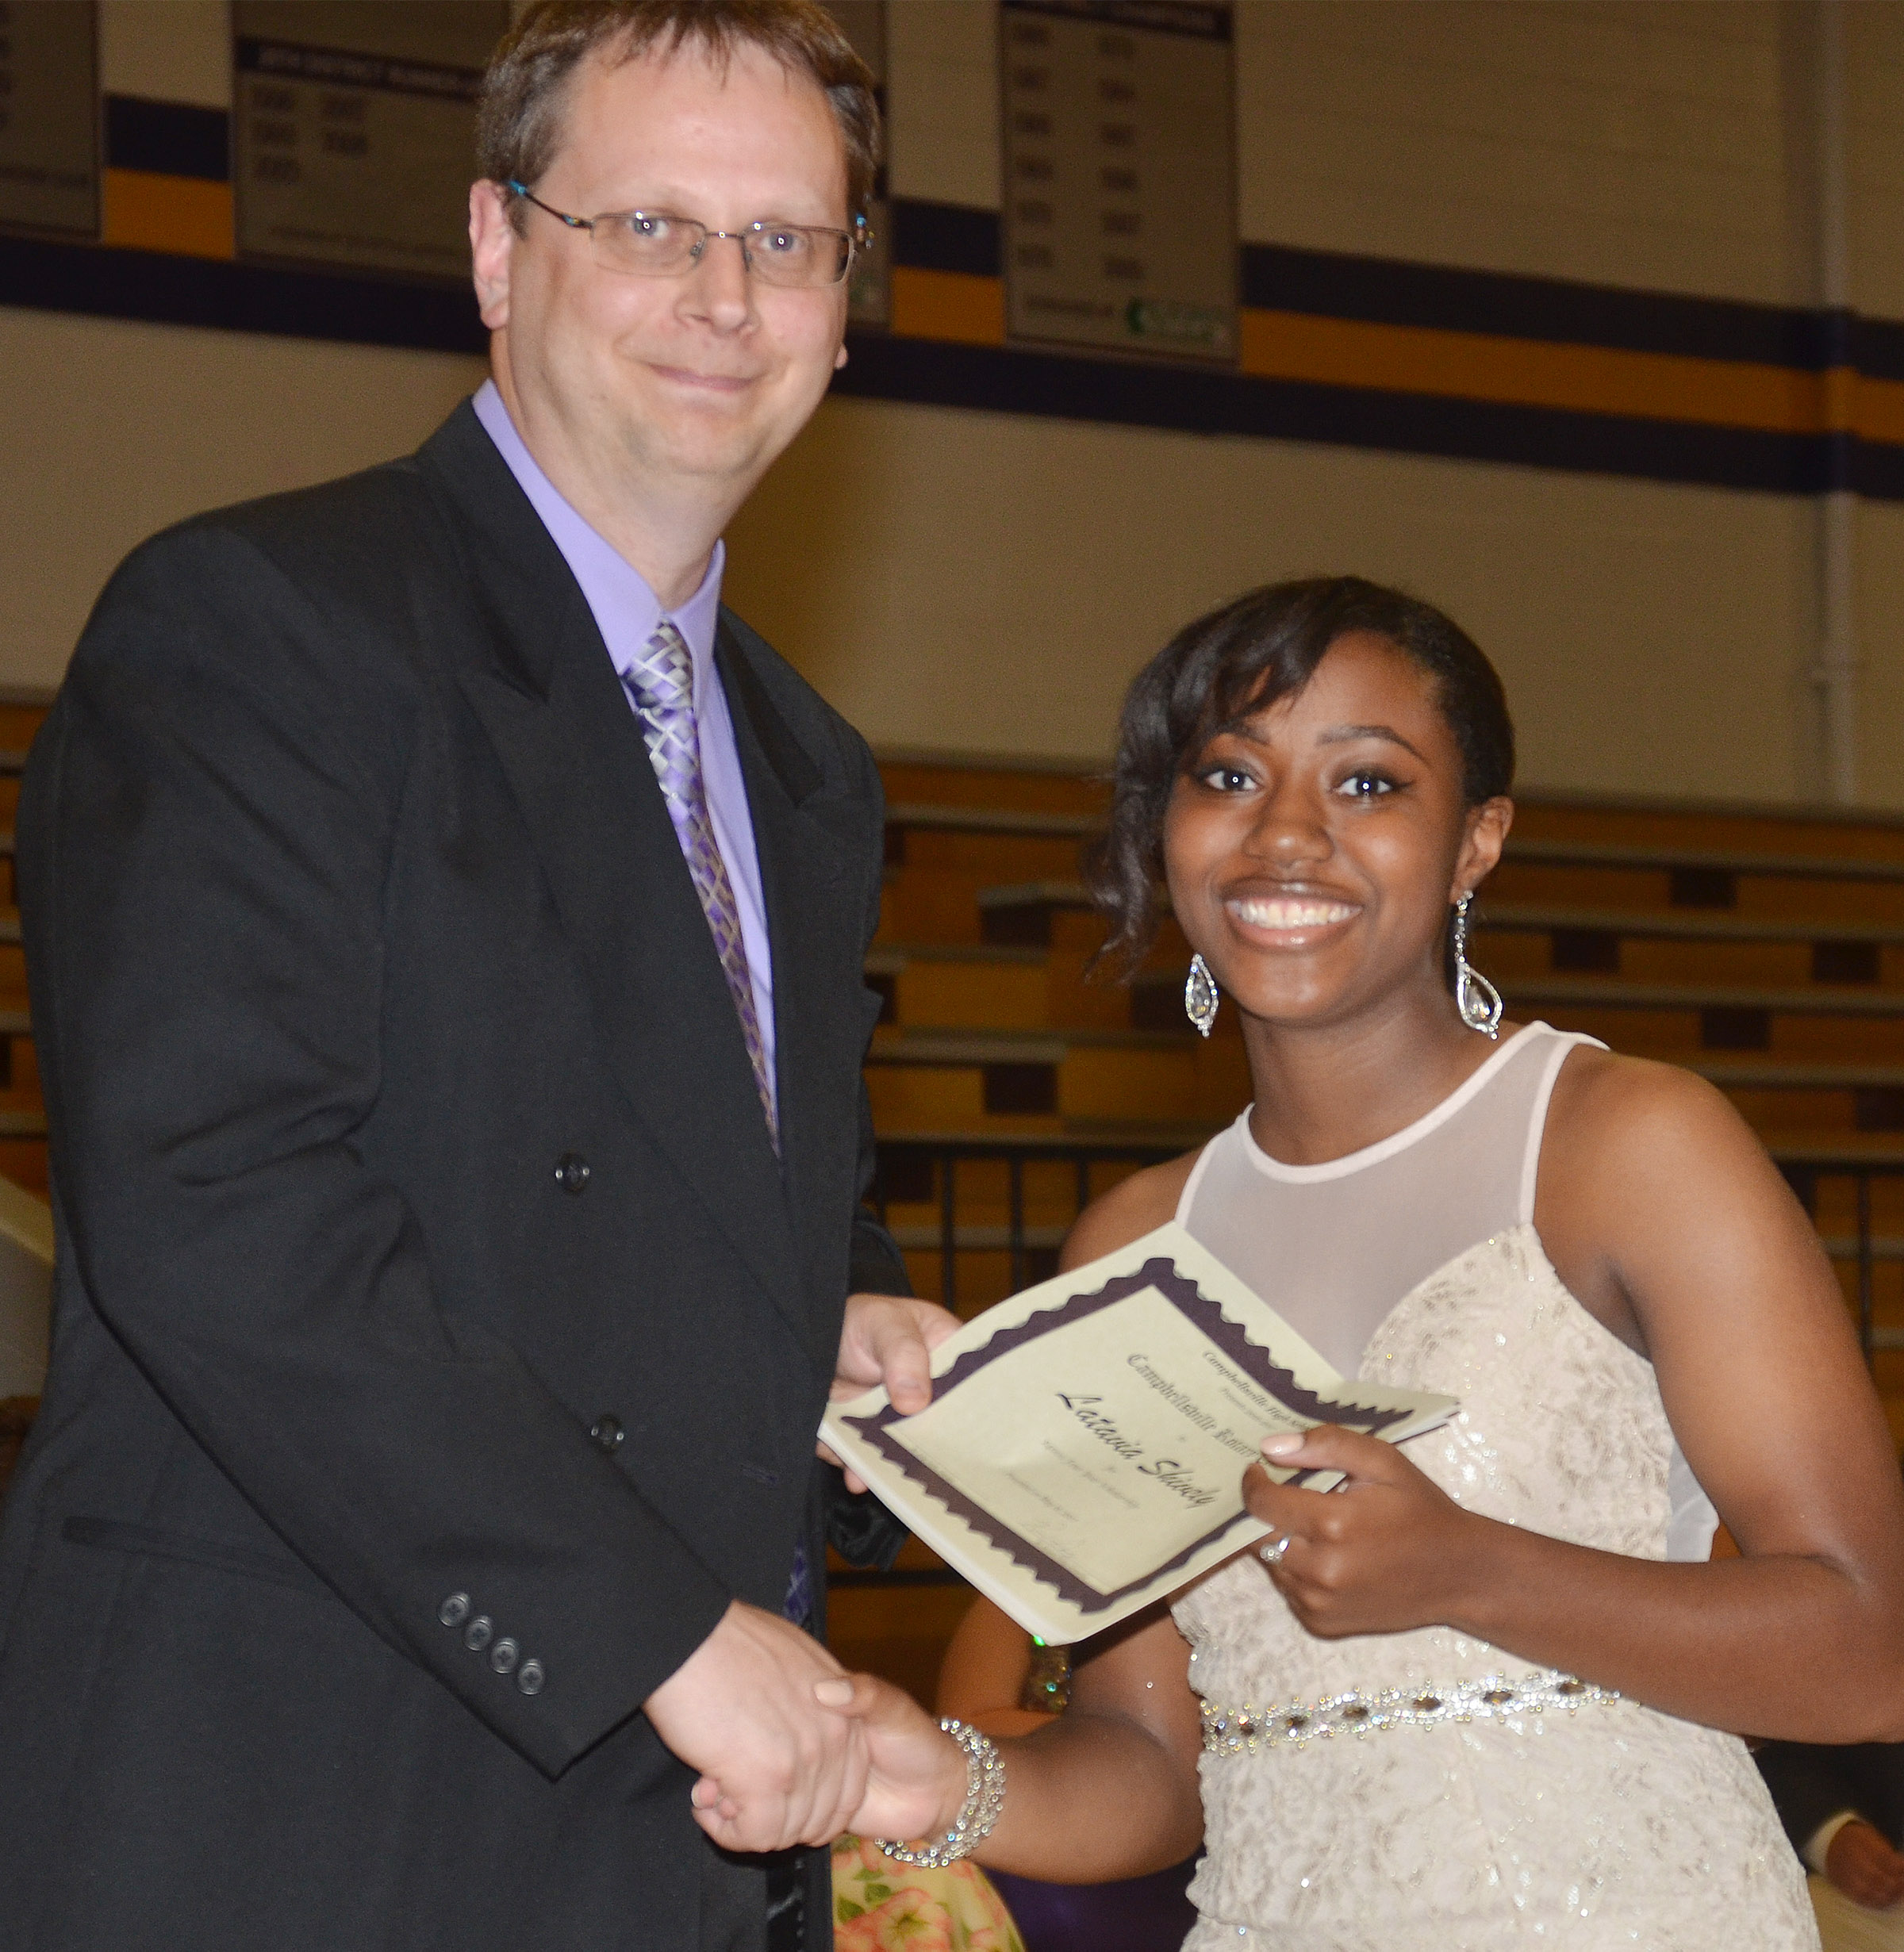 Latavia Shively receives the Campbellsville Rotary Club scholarship. She is pictured with guidance counselor Richard Dooley.